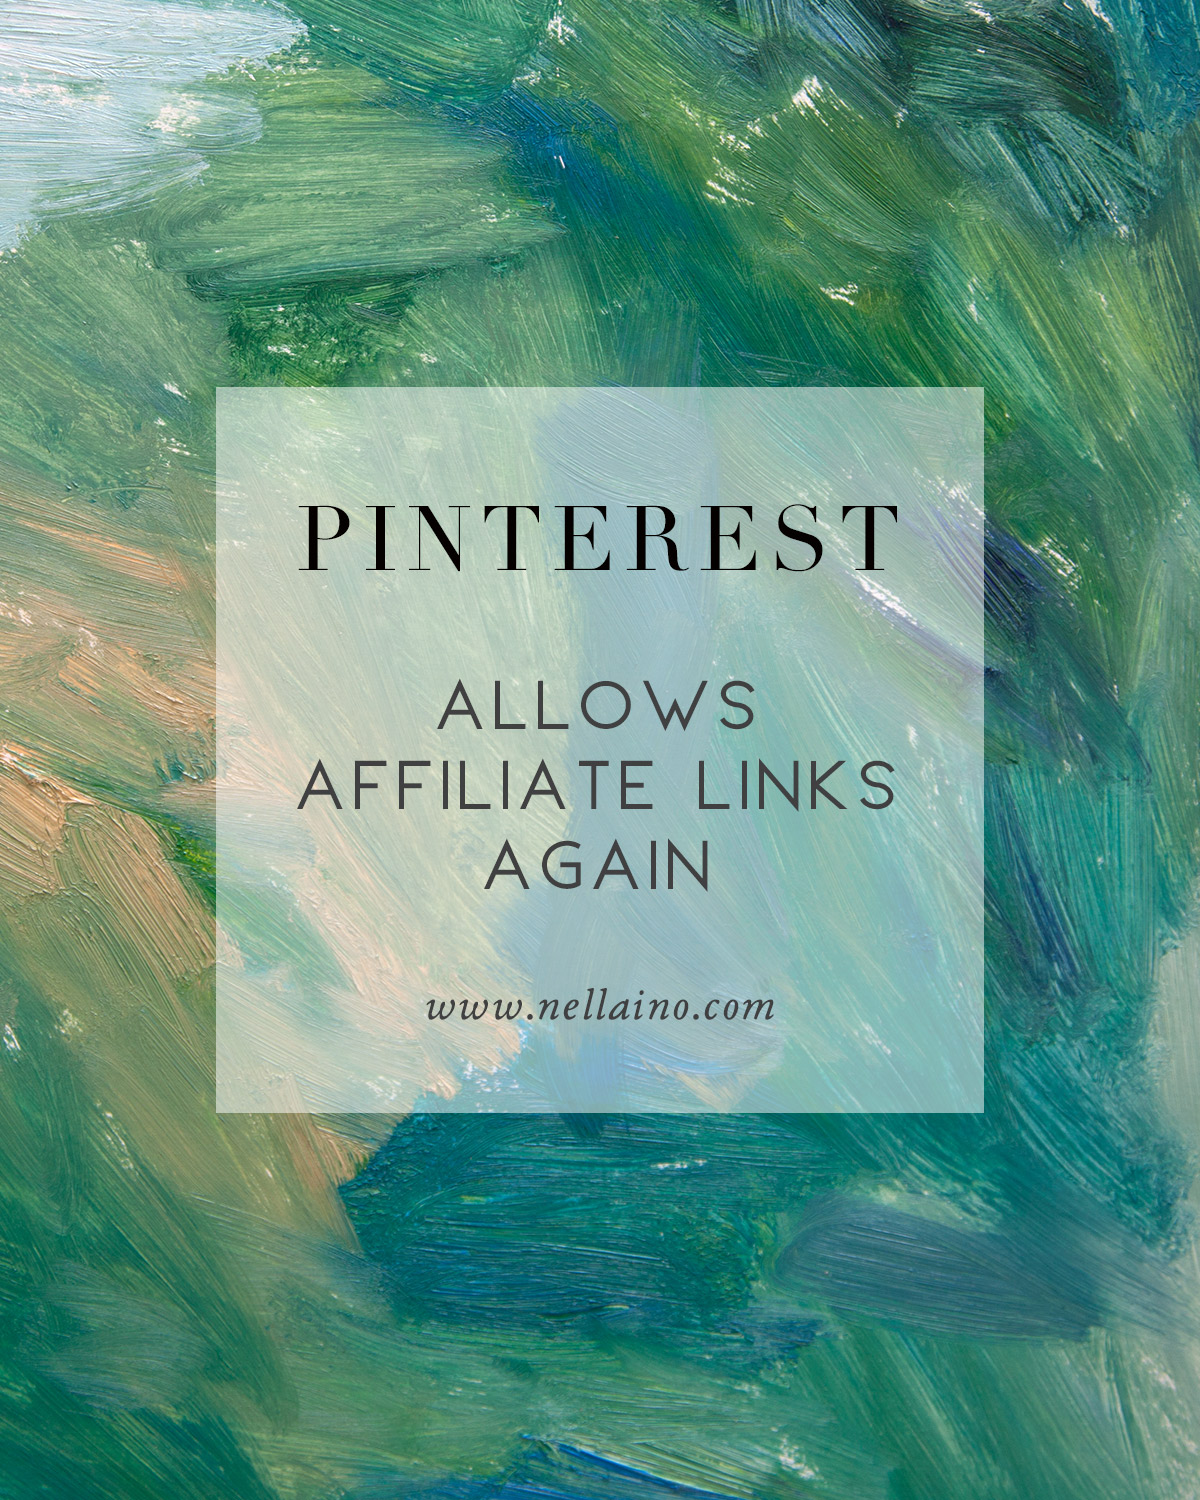 Pinterest-allows-affiliate-links.jpg